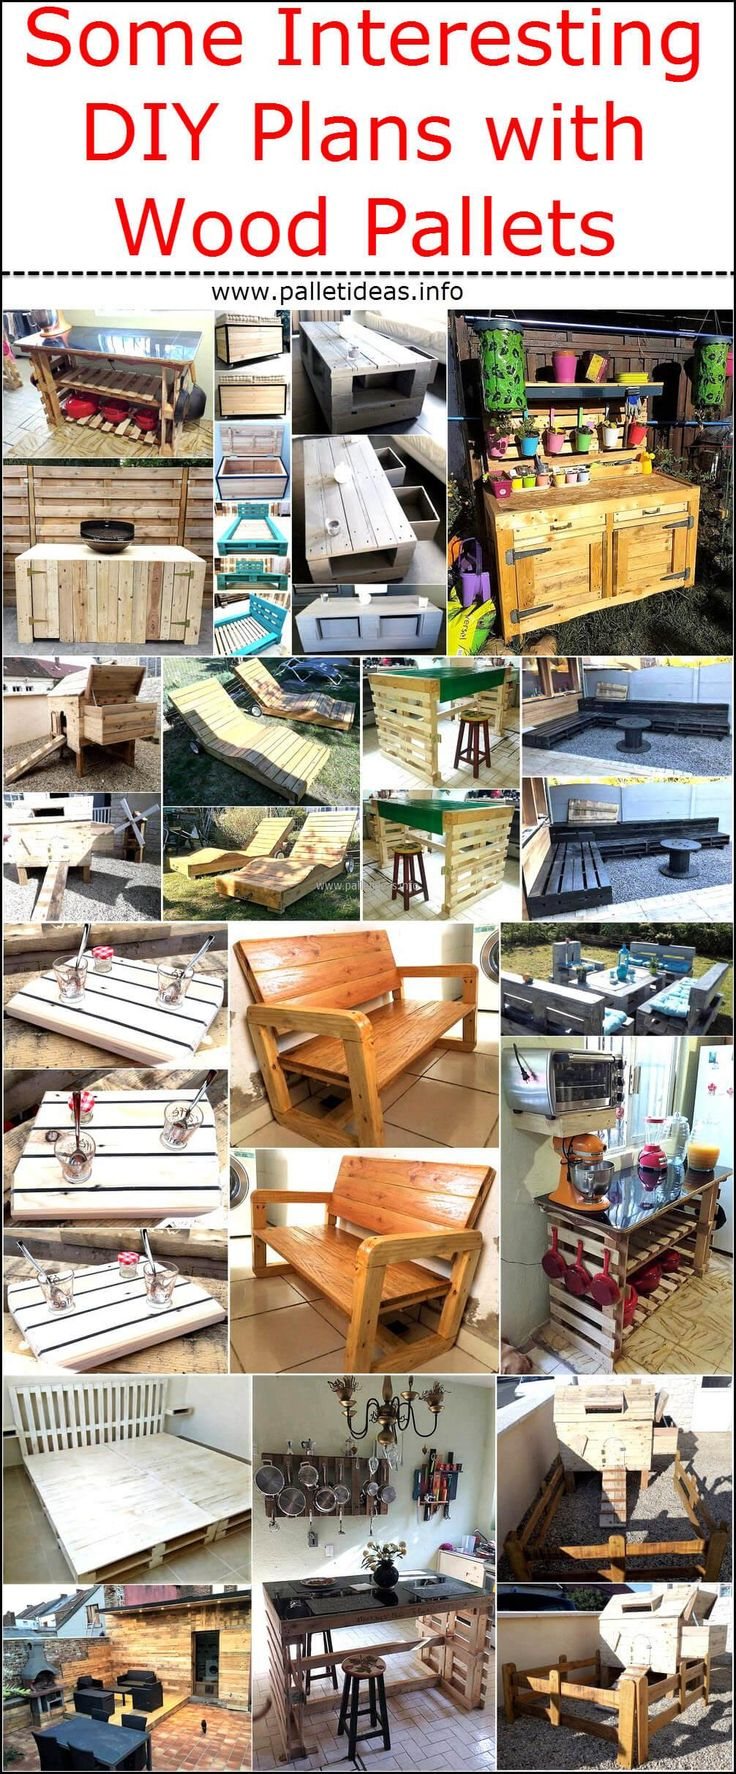 It is true that there are any people living in different parts of the world, who don't know they can use the wood pallets once they are used for their primary purpose; but there are also many individuals who just use them to create simple items. It is not hard to cut the pallets into stylish shapes and creating interesting items with them that are not only impressive, but praiseworthy. We are interested in presenting the innovative ideas to use the wood pallets, so here are some interesting…